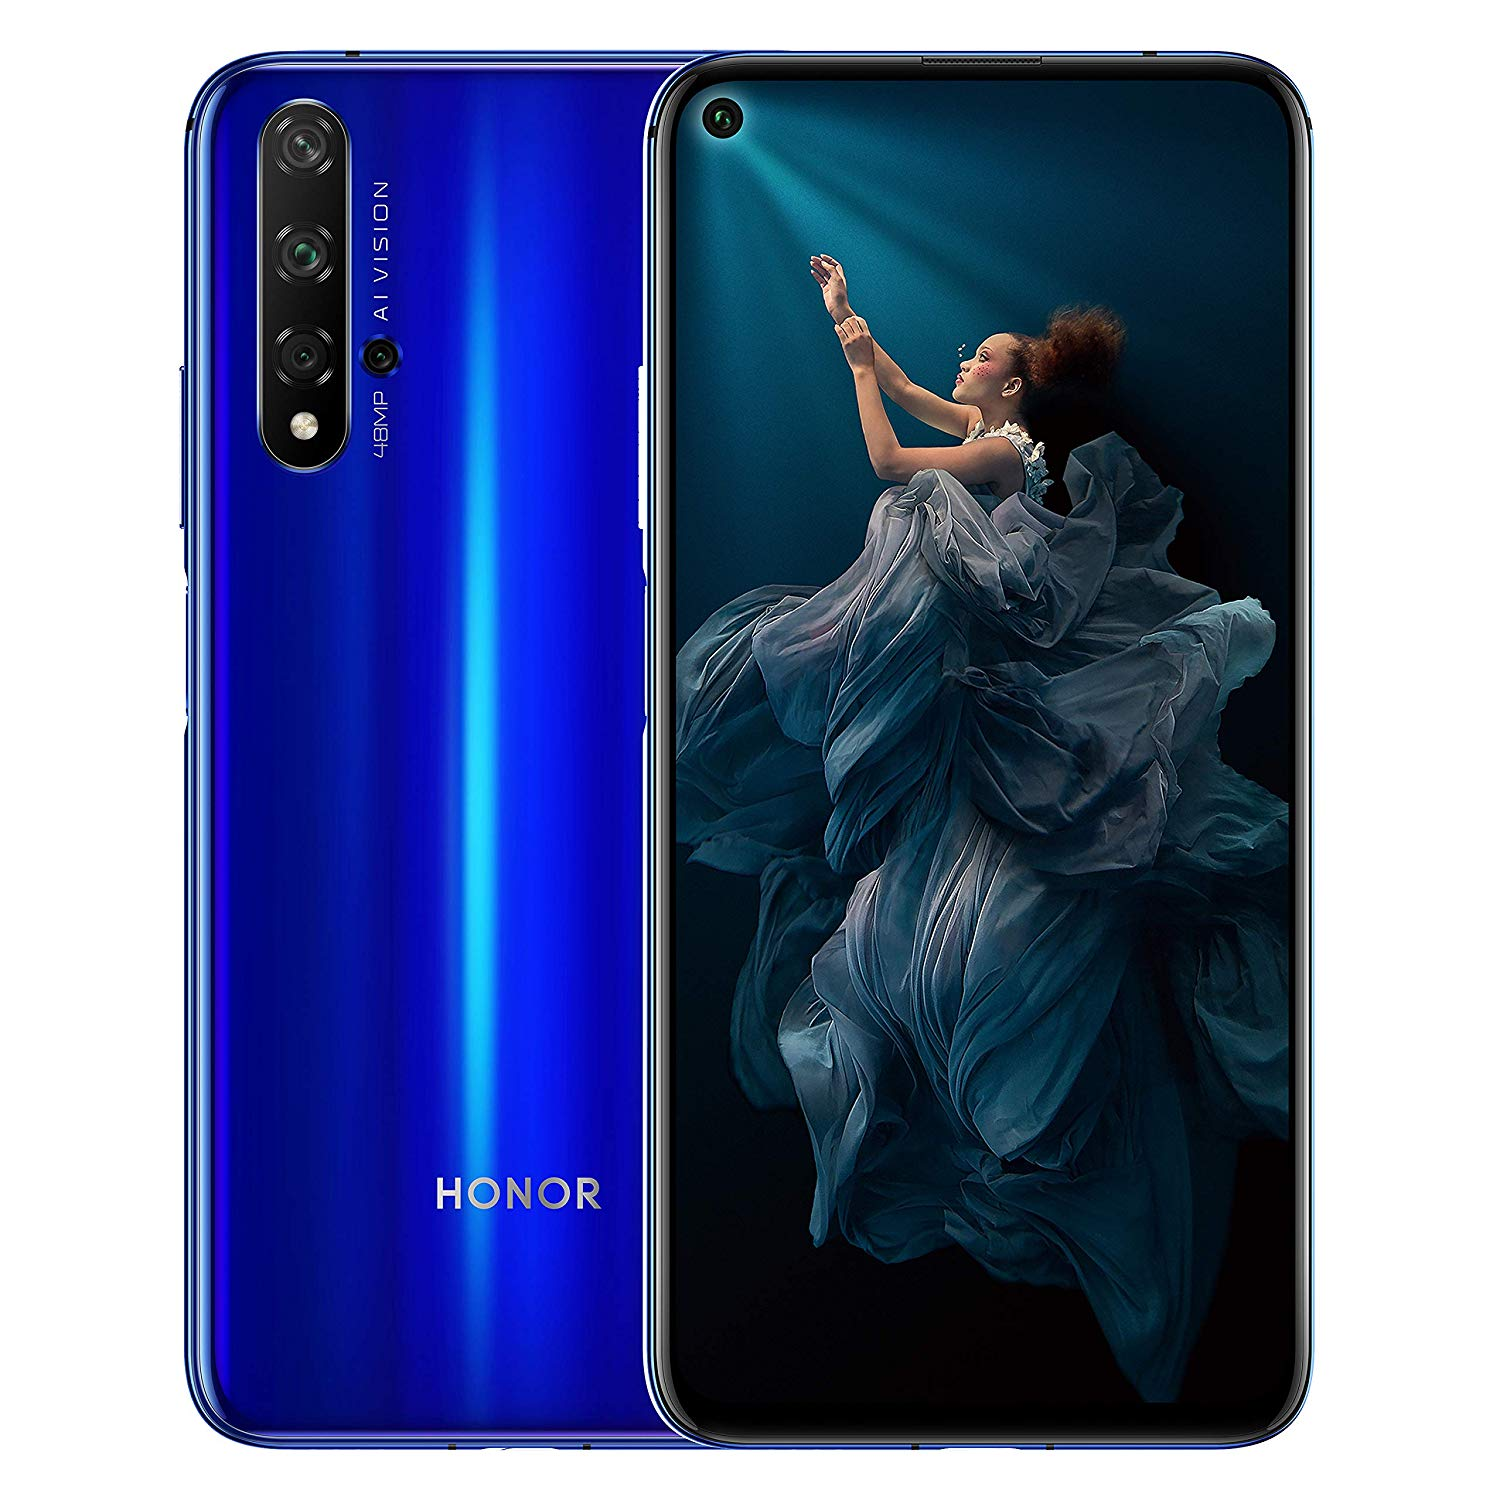 HONOR 20 Dual SIM Smartphone, 48 MP AI Quad Camera, 128 GB storage  £369.99 at Amazon